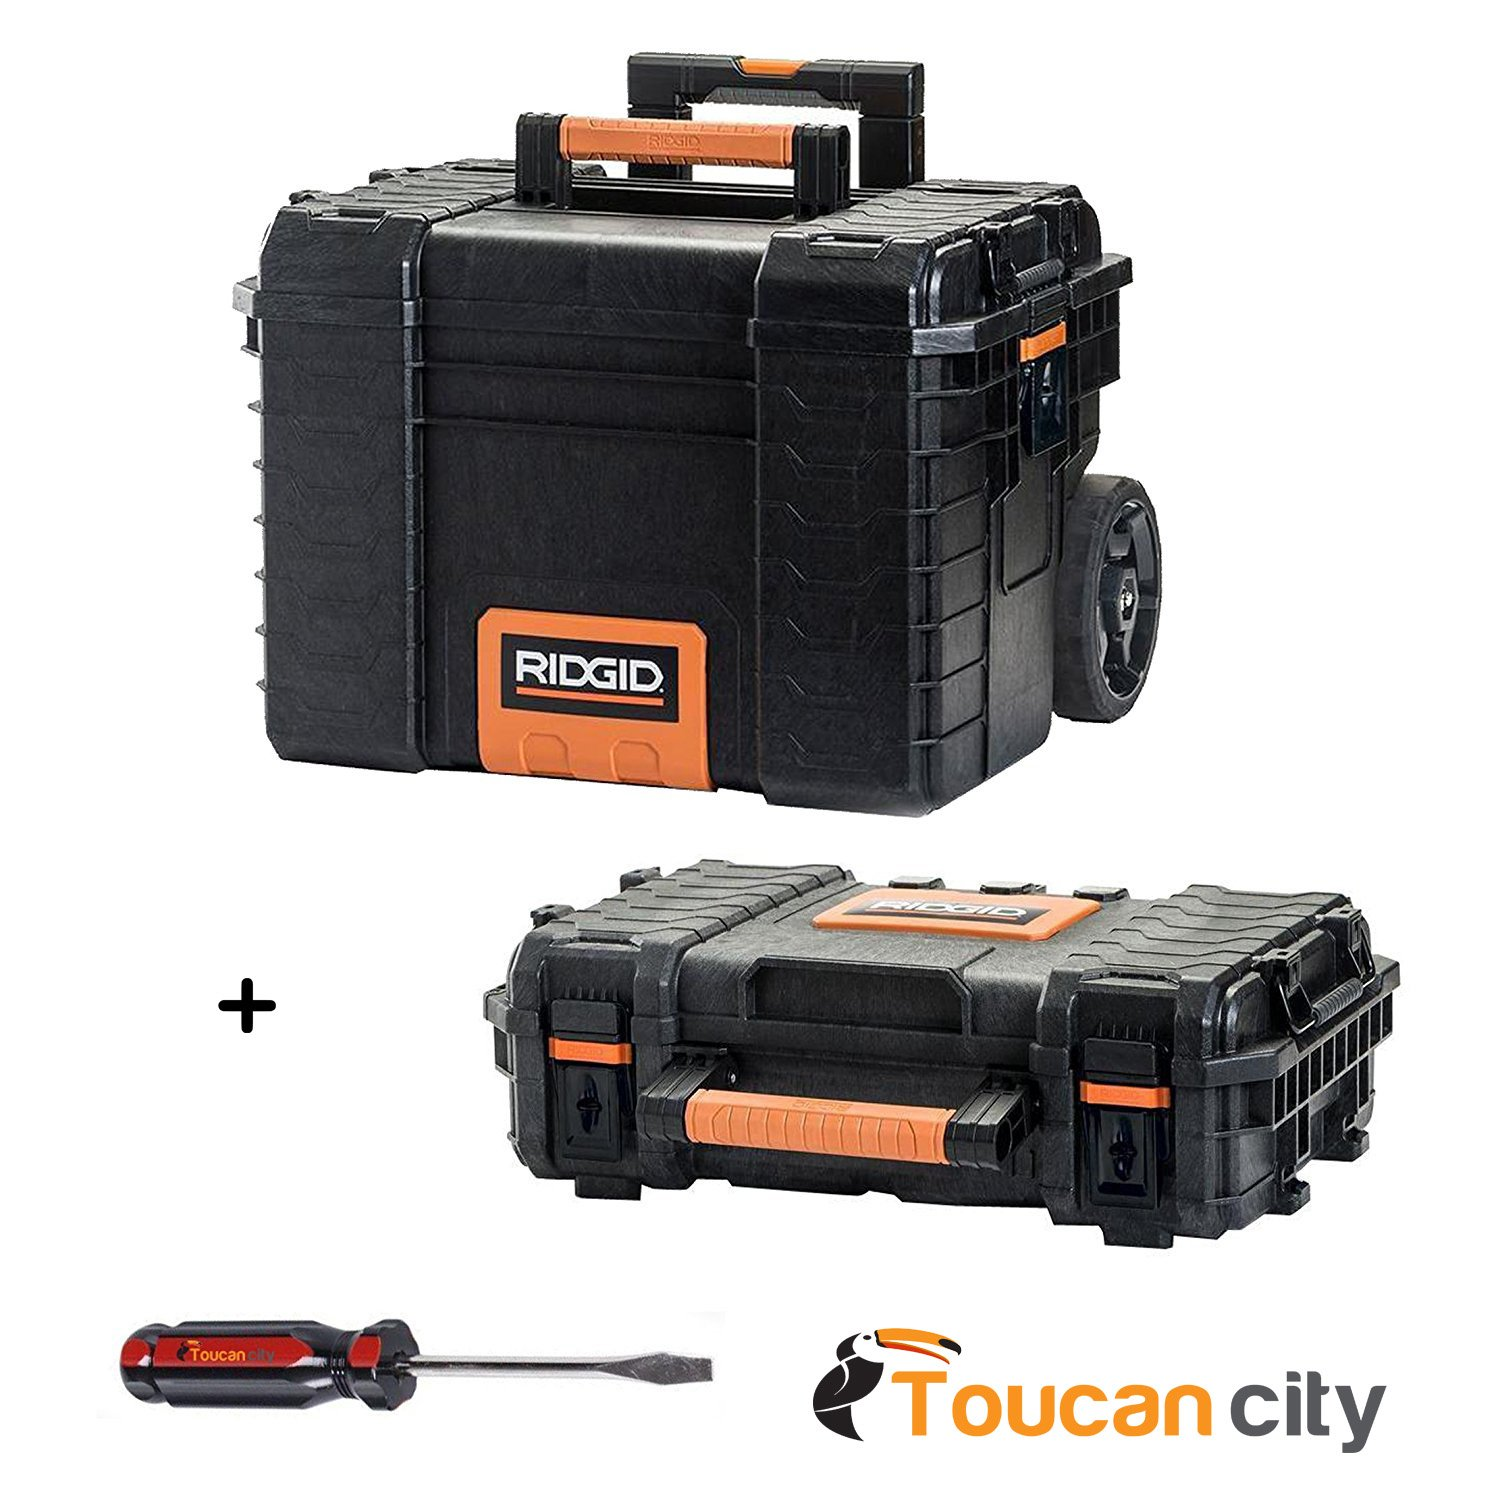 RIDGID Professional Tool Storage Cart and Organizer Stack, 2 Tool Box Combination And Toucan City Screwdriver by Ridgid - Toucan City (Image #1)